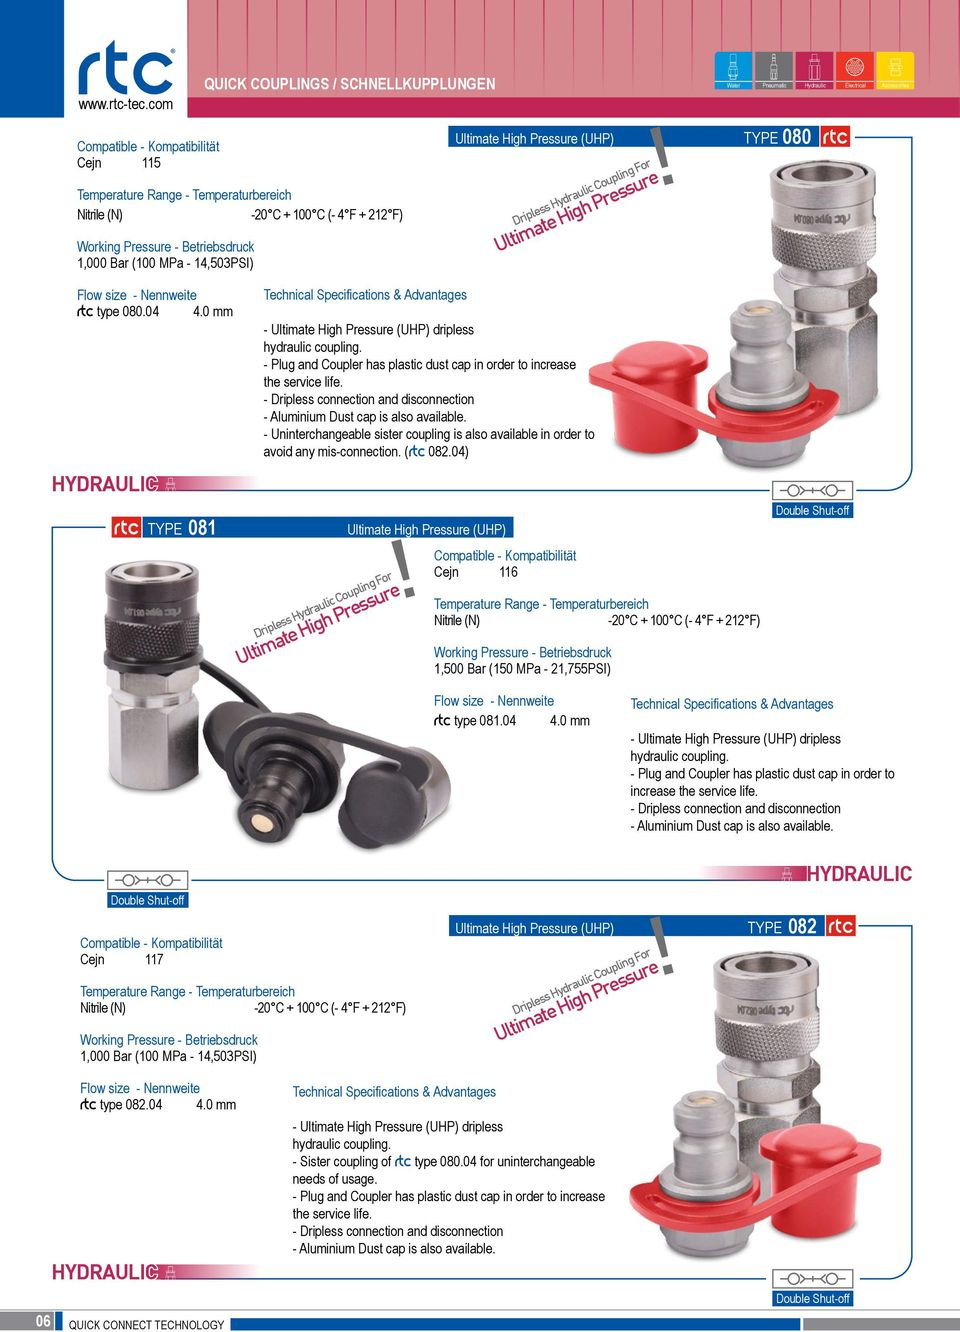 04 4.0 mm 081 Technical Specifications & Advantages - Ultimate High Pressure (UHP) dripless hydraulic coupling. - Plug and Coupler has plastic dust cap in order to increase the service life.